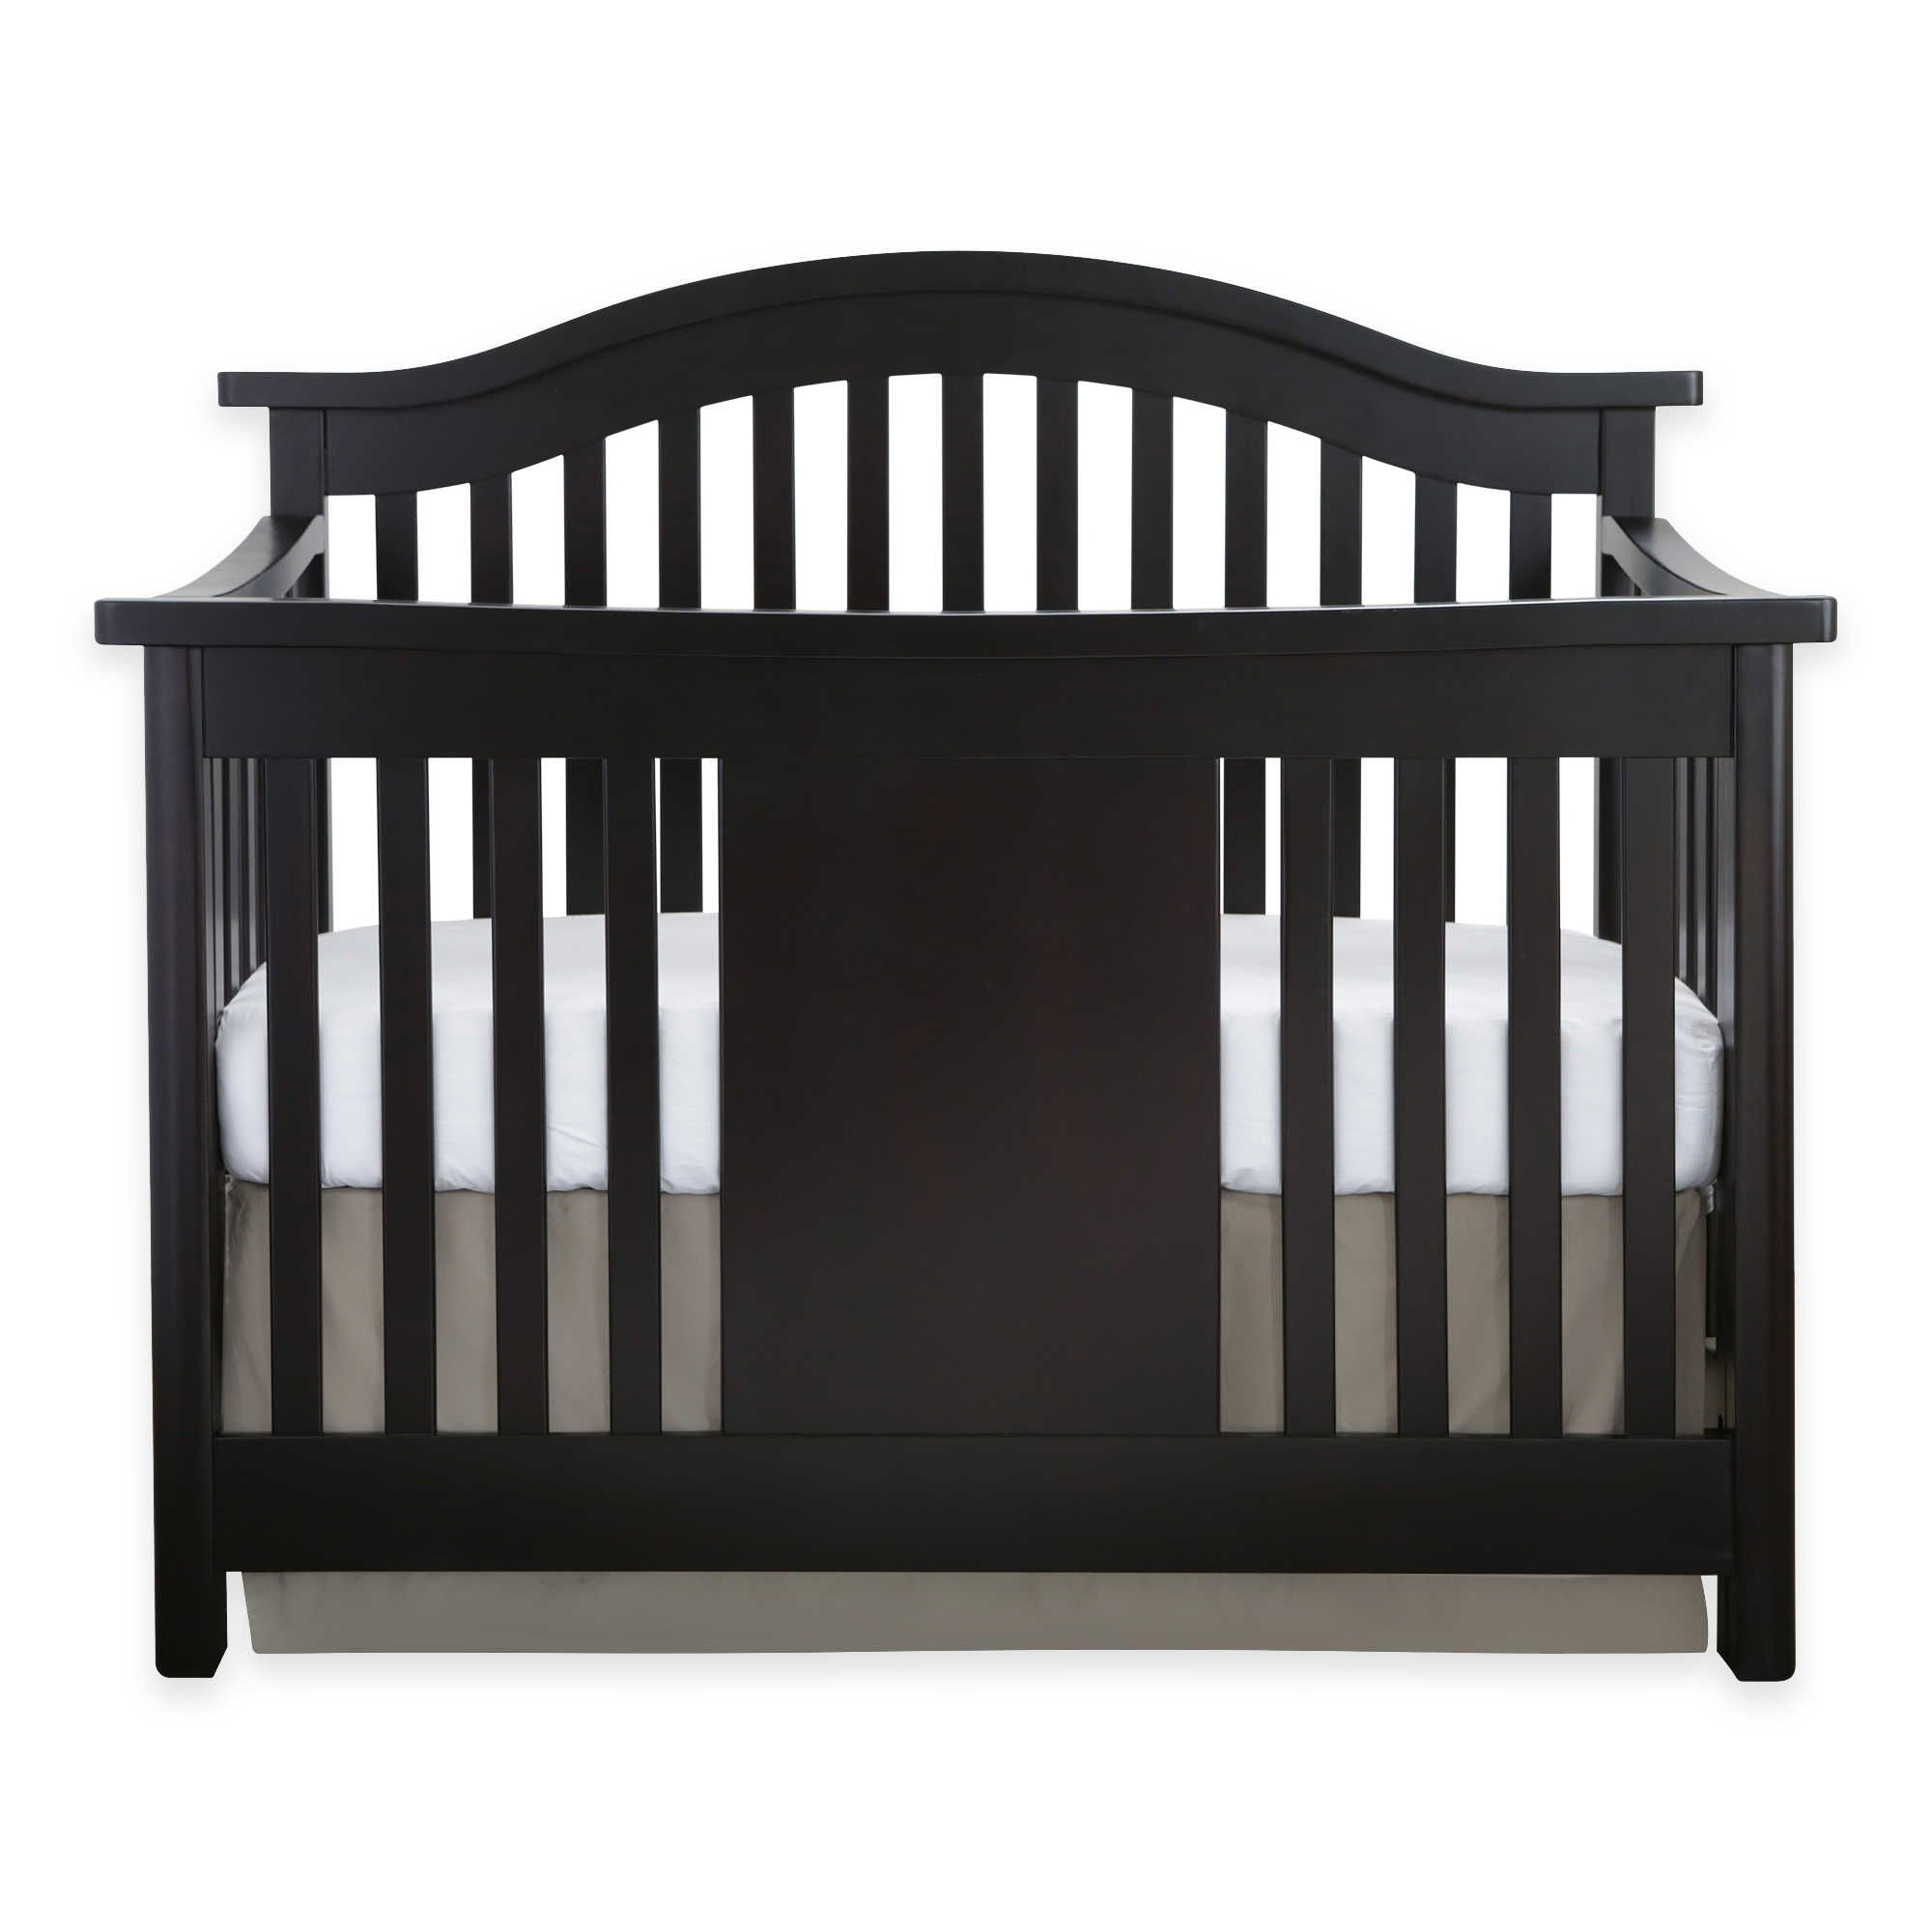 Baby Appleseed® Stratford 4in1 Convertible Crib in